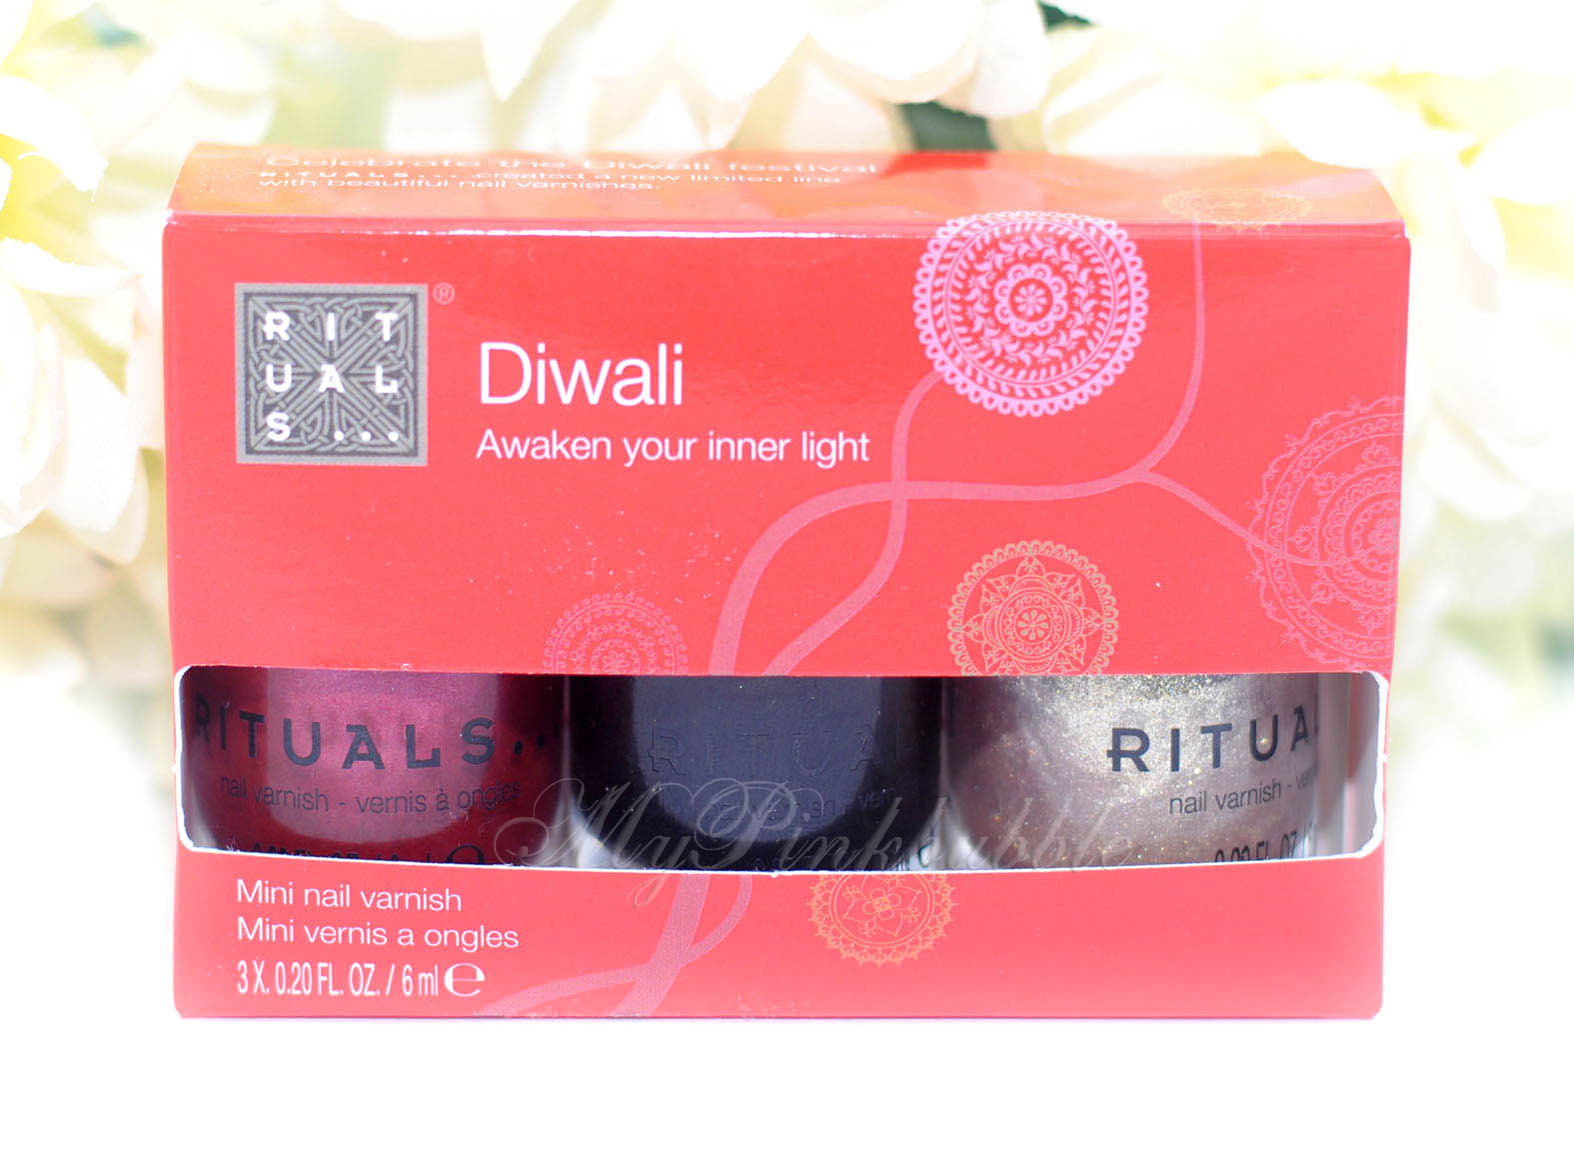 Rituals Nail varnish set